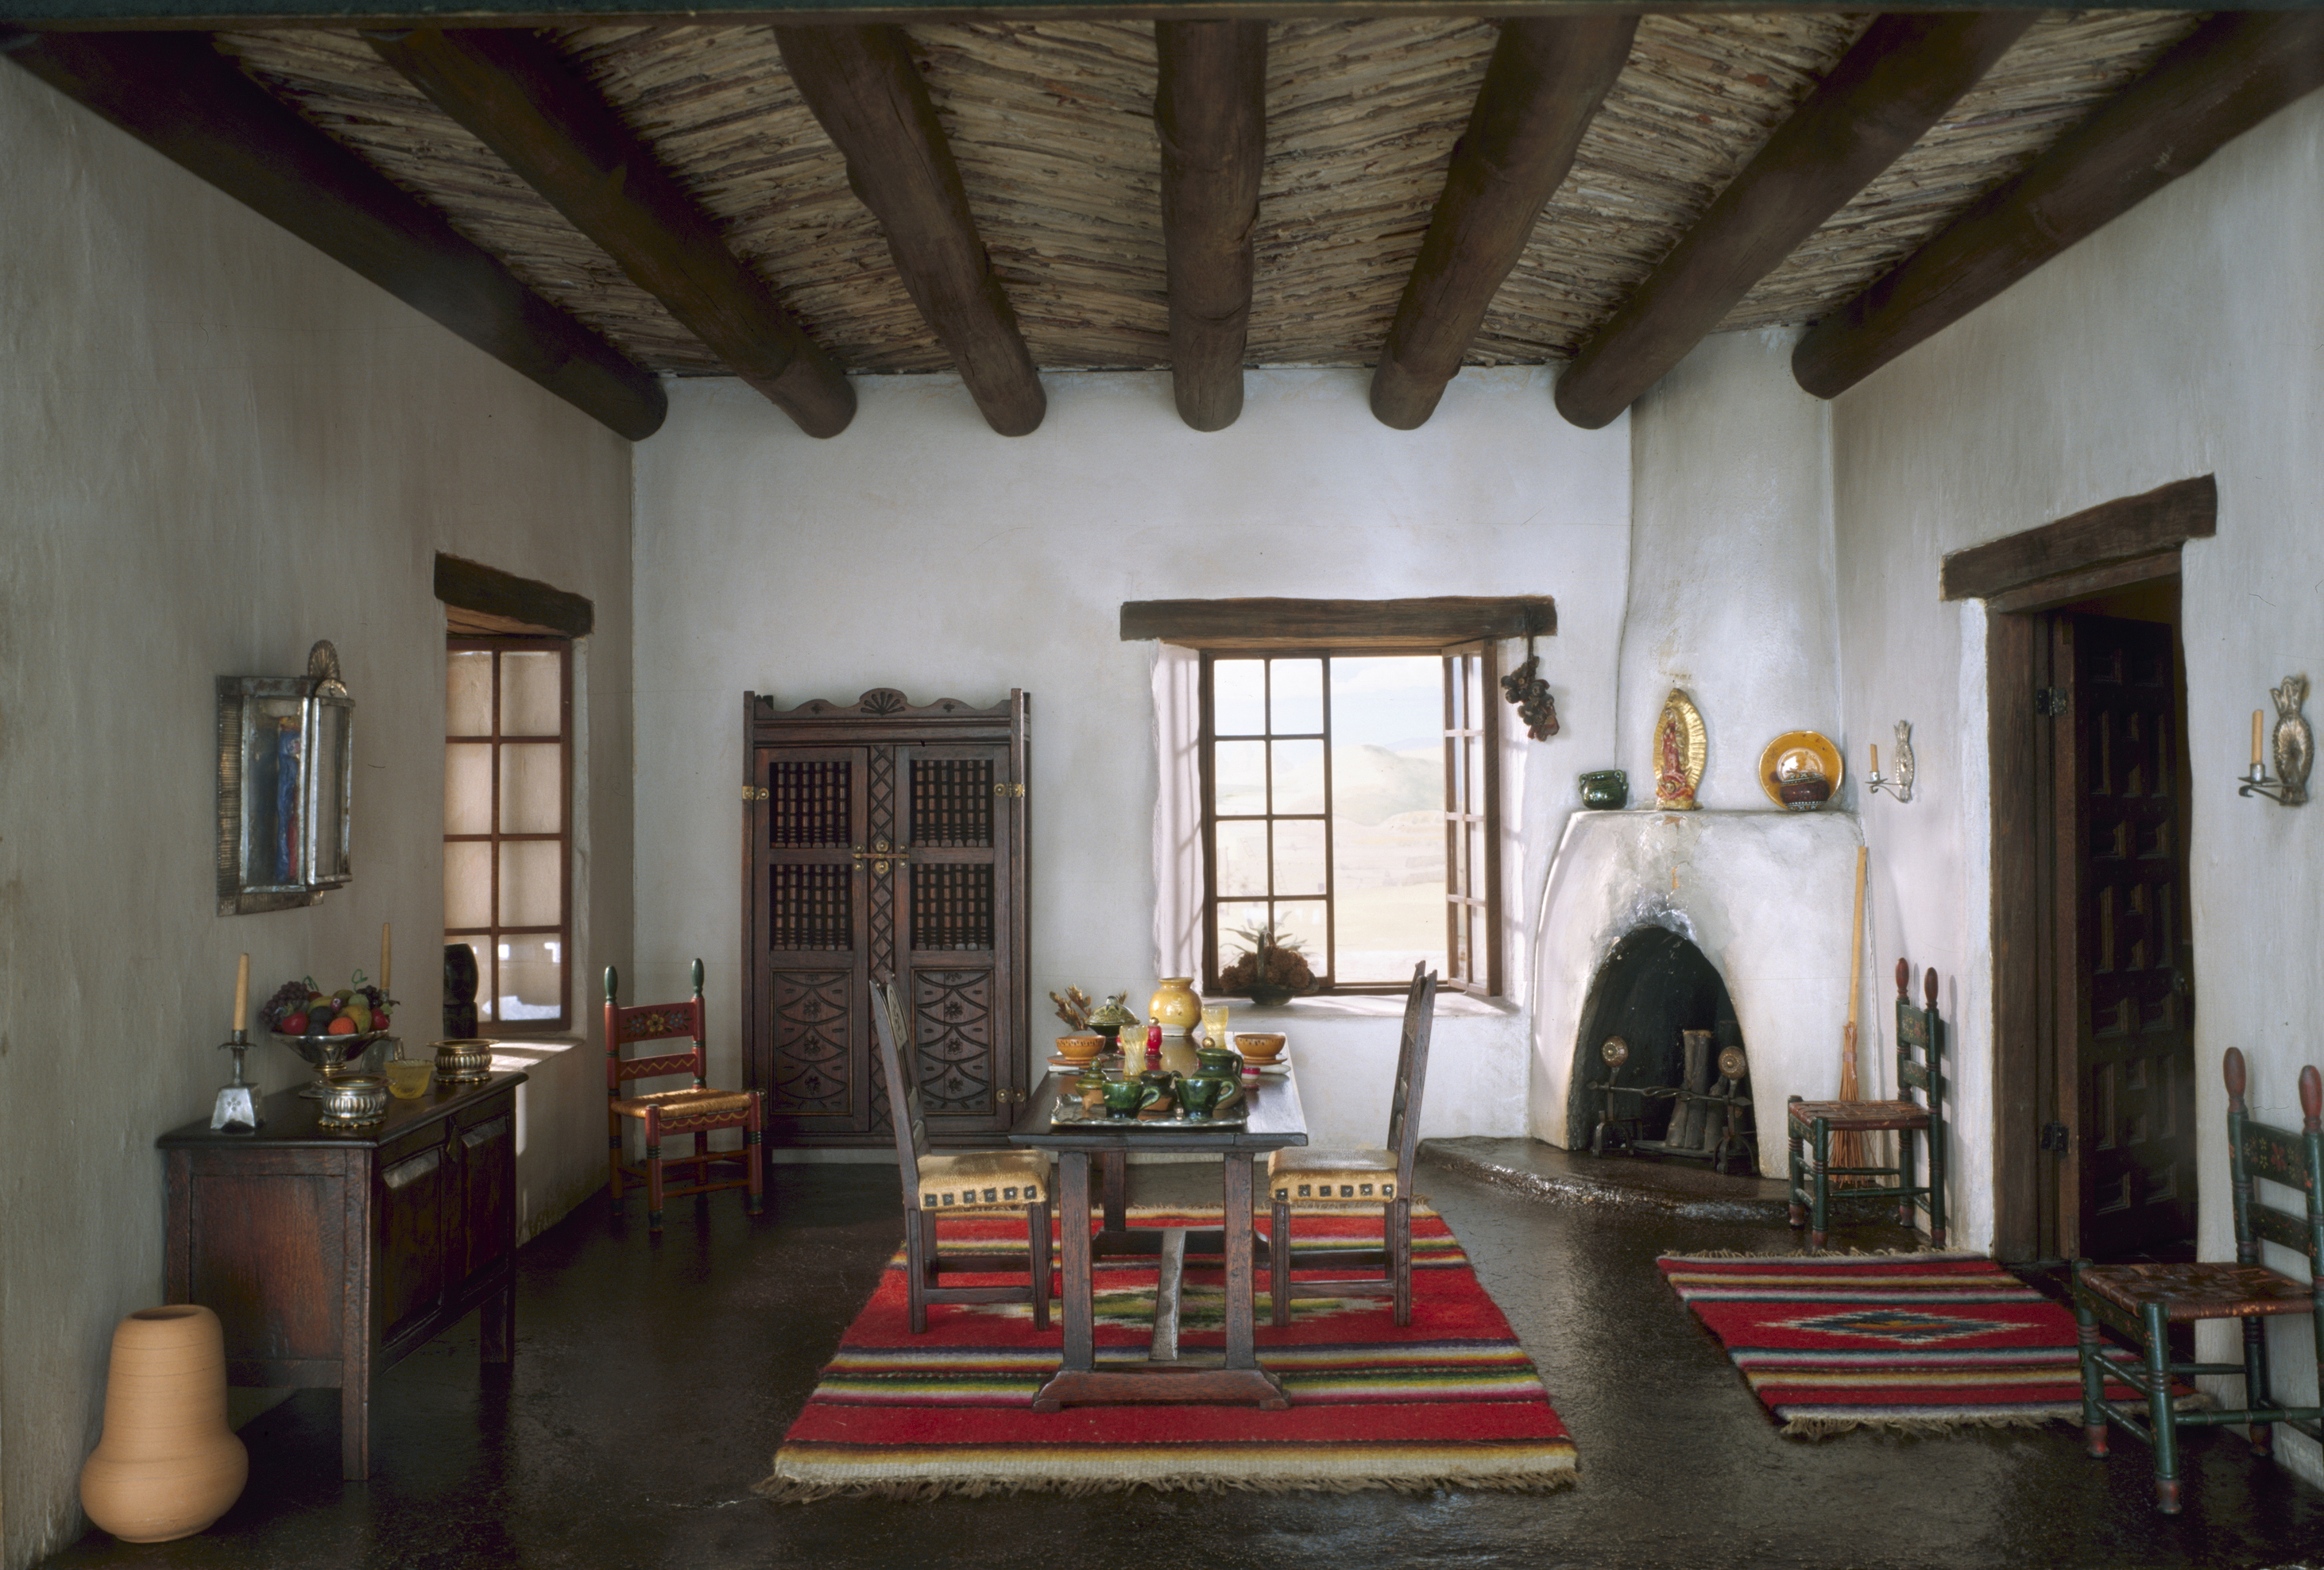 Tiny Rooms meticulous and miniature: the thorne rooms of the art institute